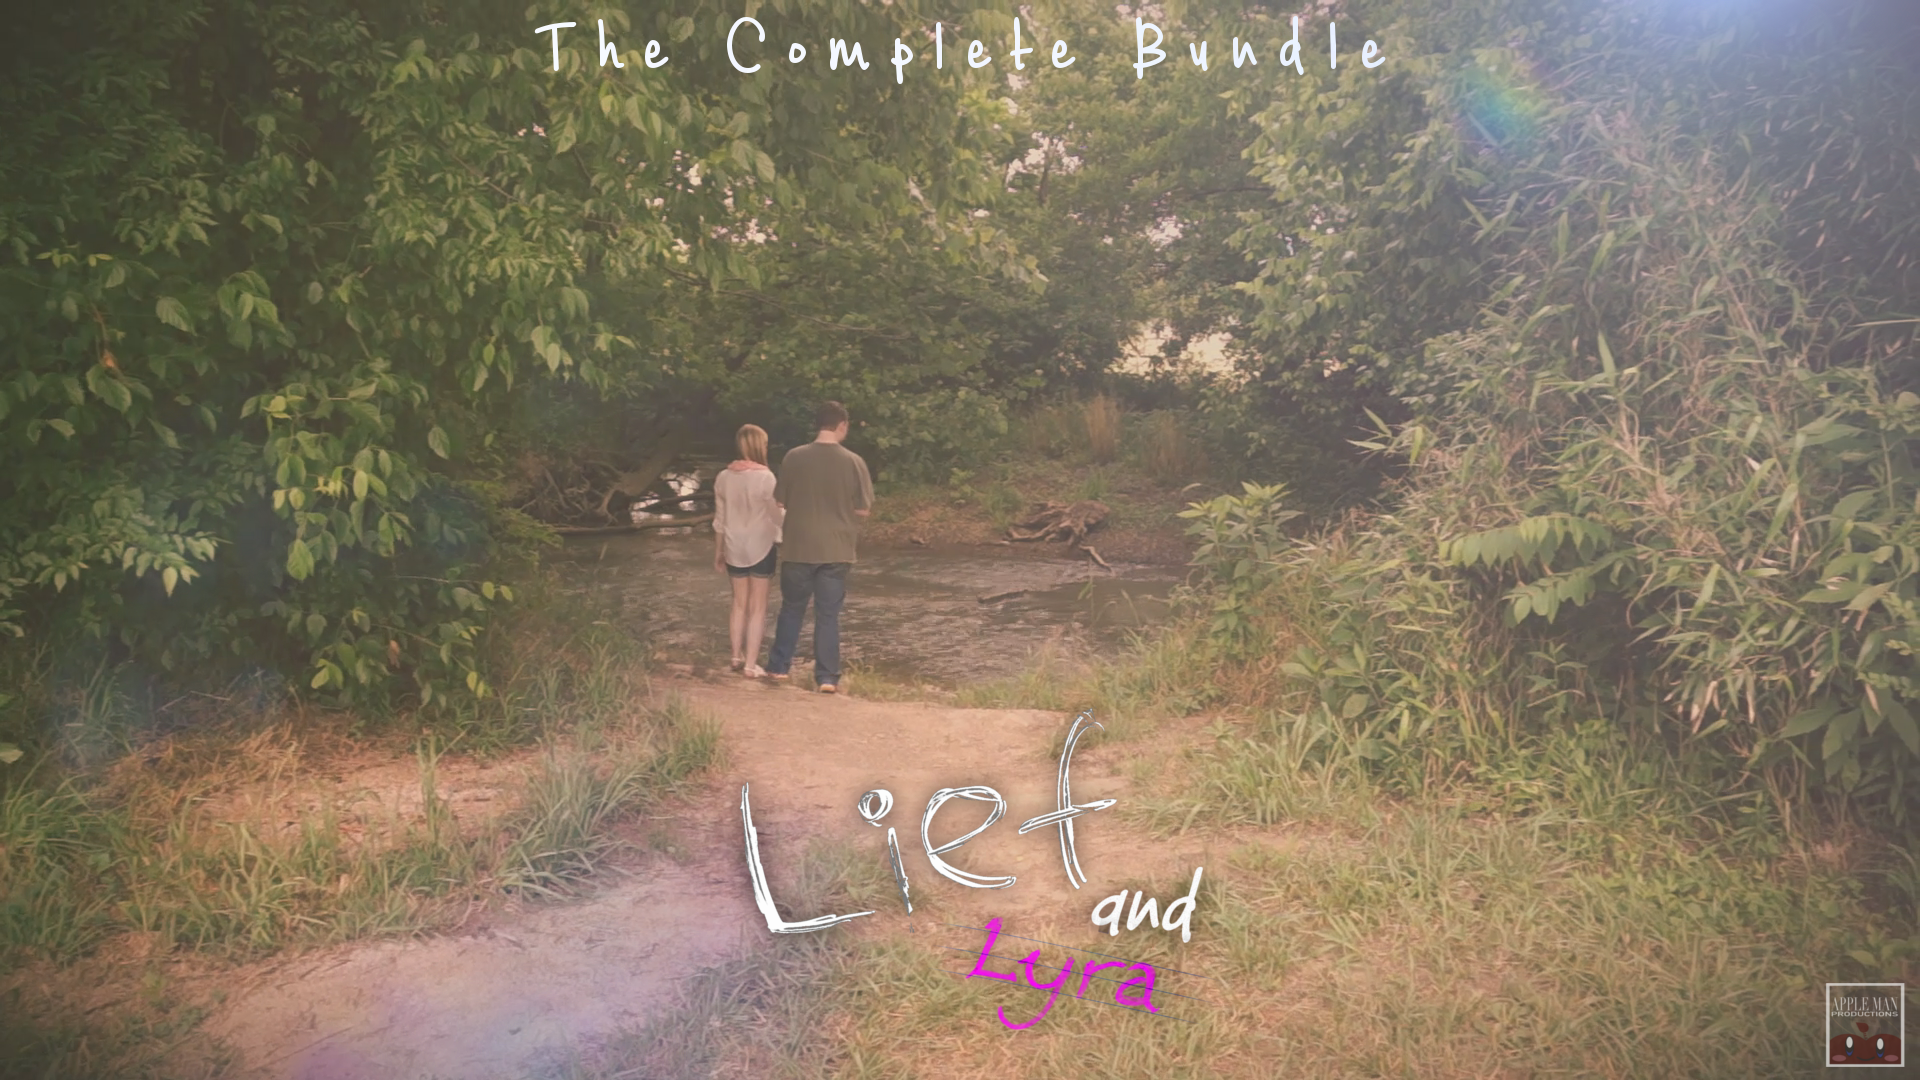 Lief and Lyra - The Complete Bundle